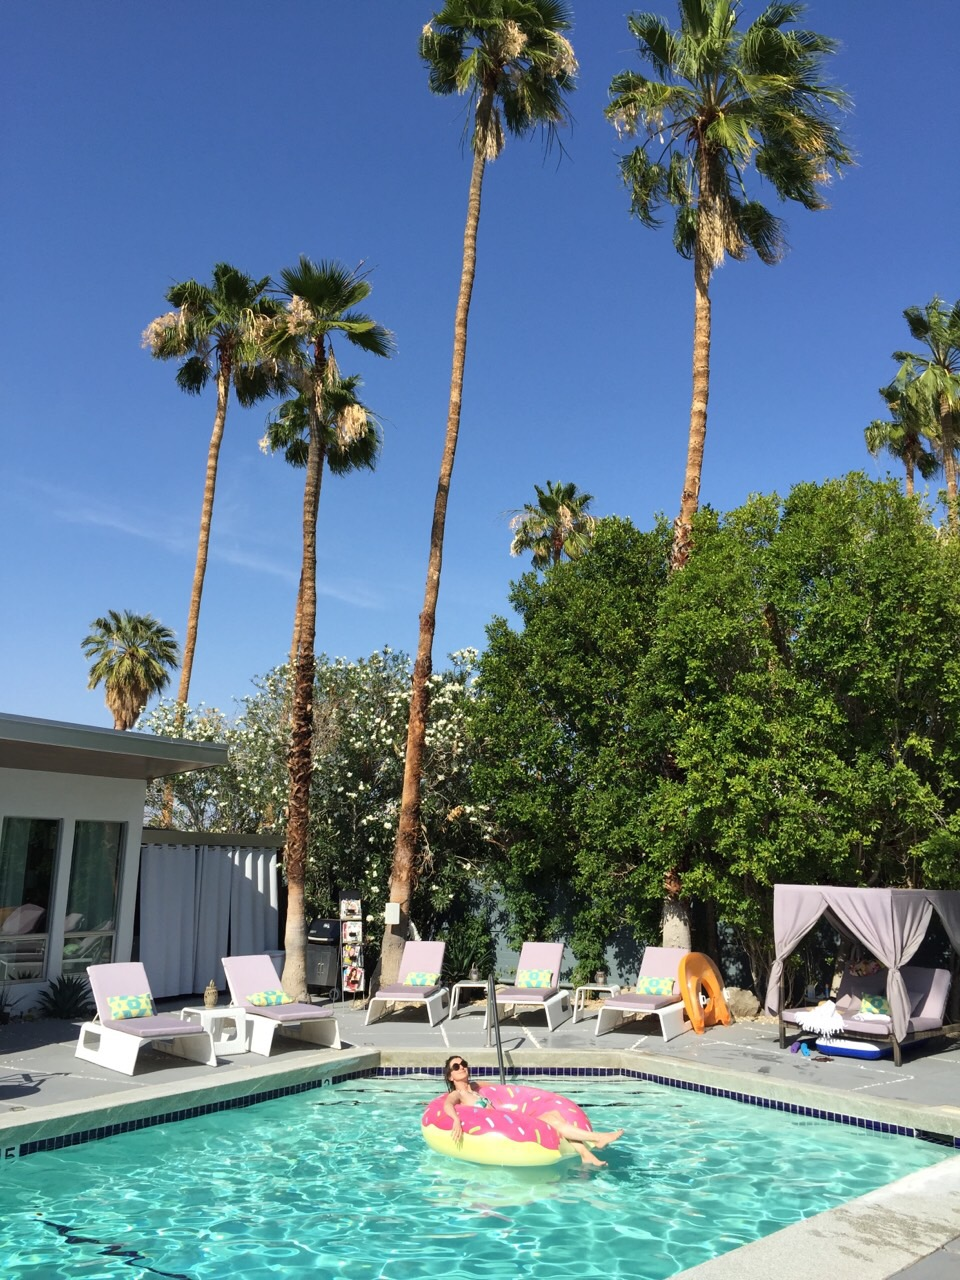 The Wesley Boutique Hotel In Palm Springs This Life Of Travel - A mid century desert oasis in palm springs